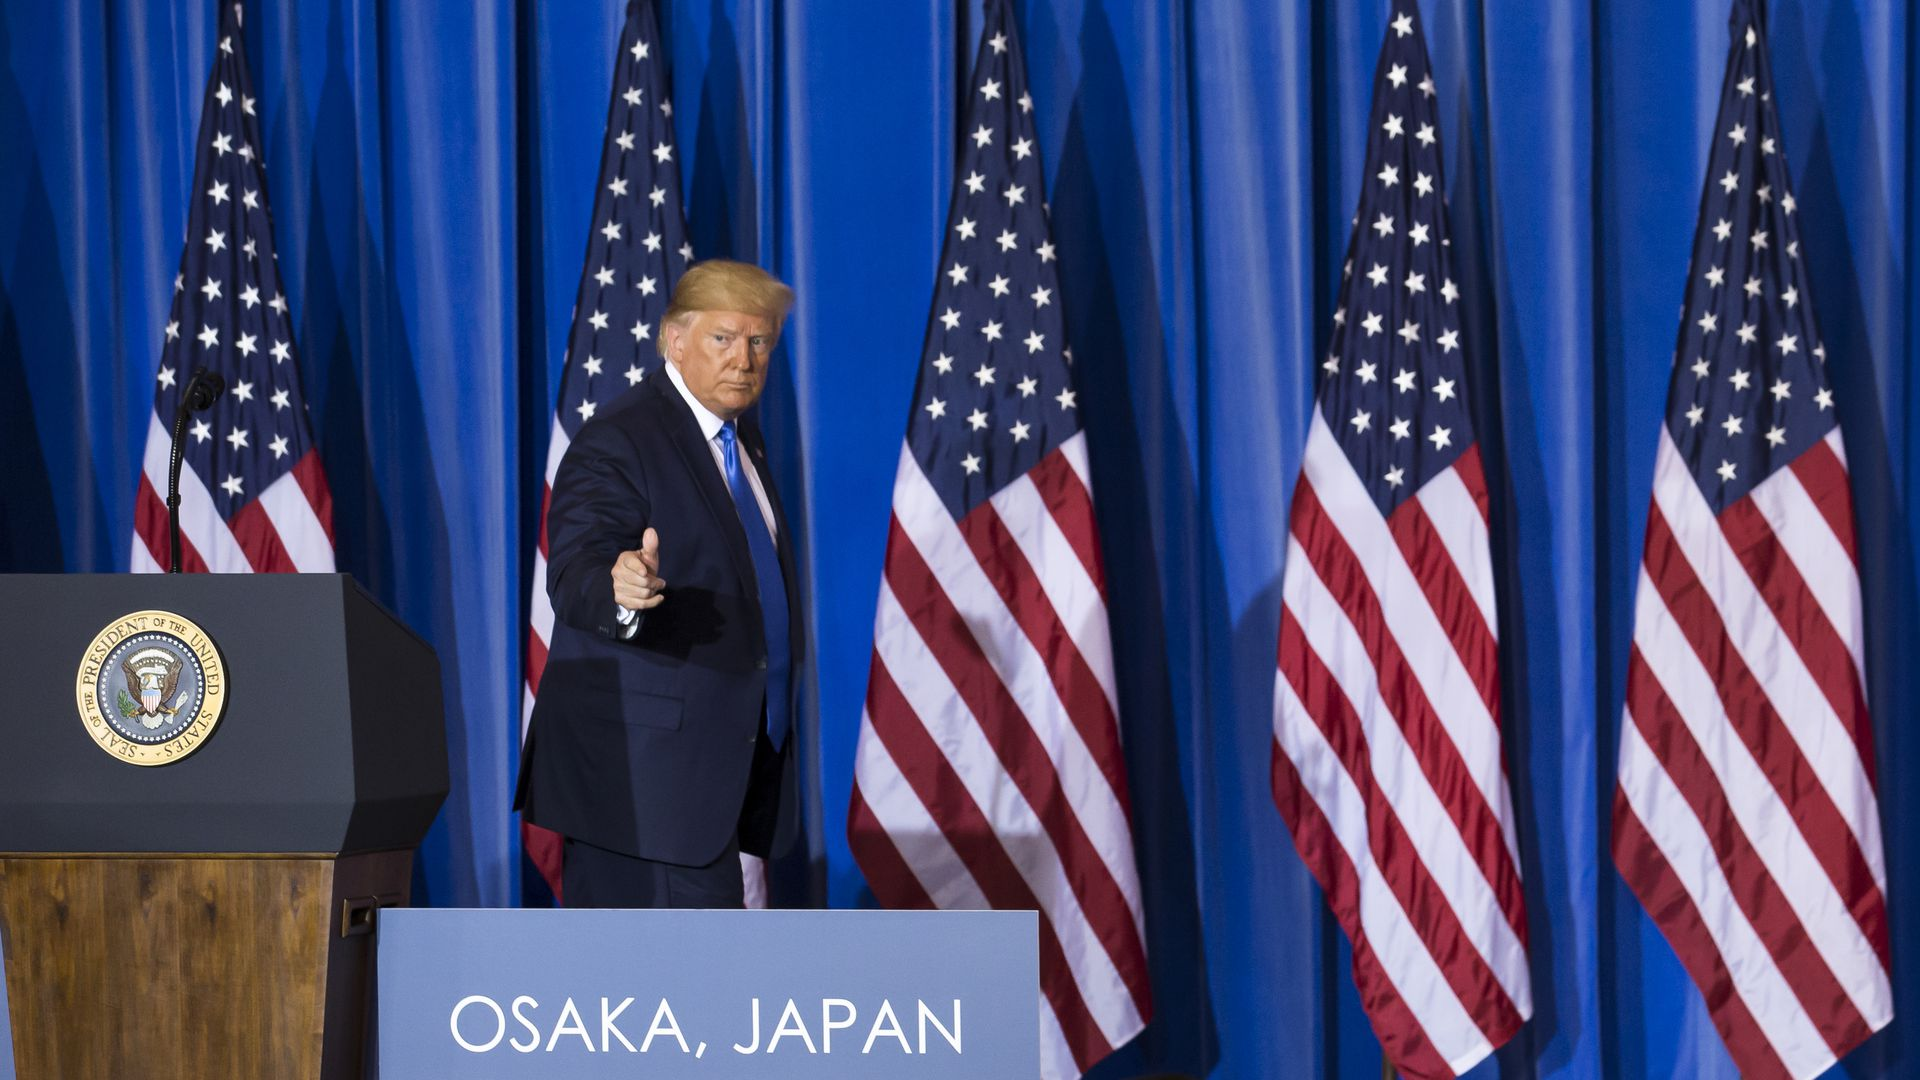 President Trump on stage after a press conference in Japan.